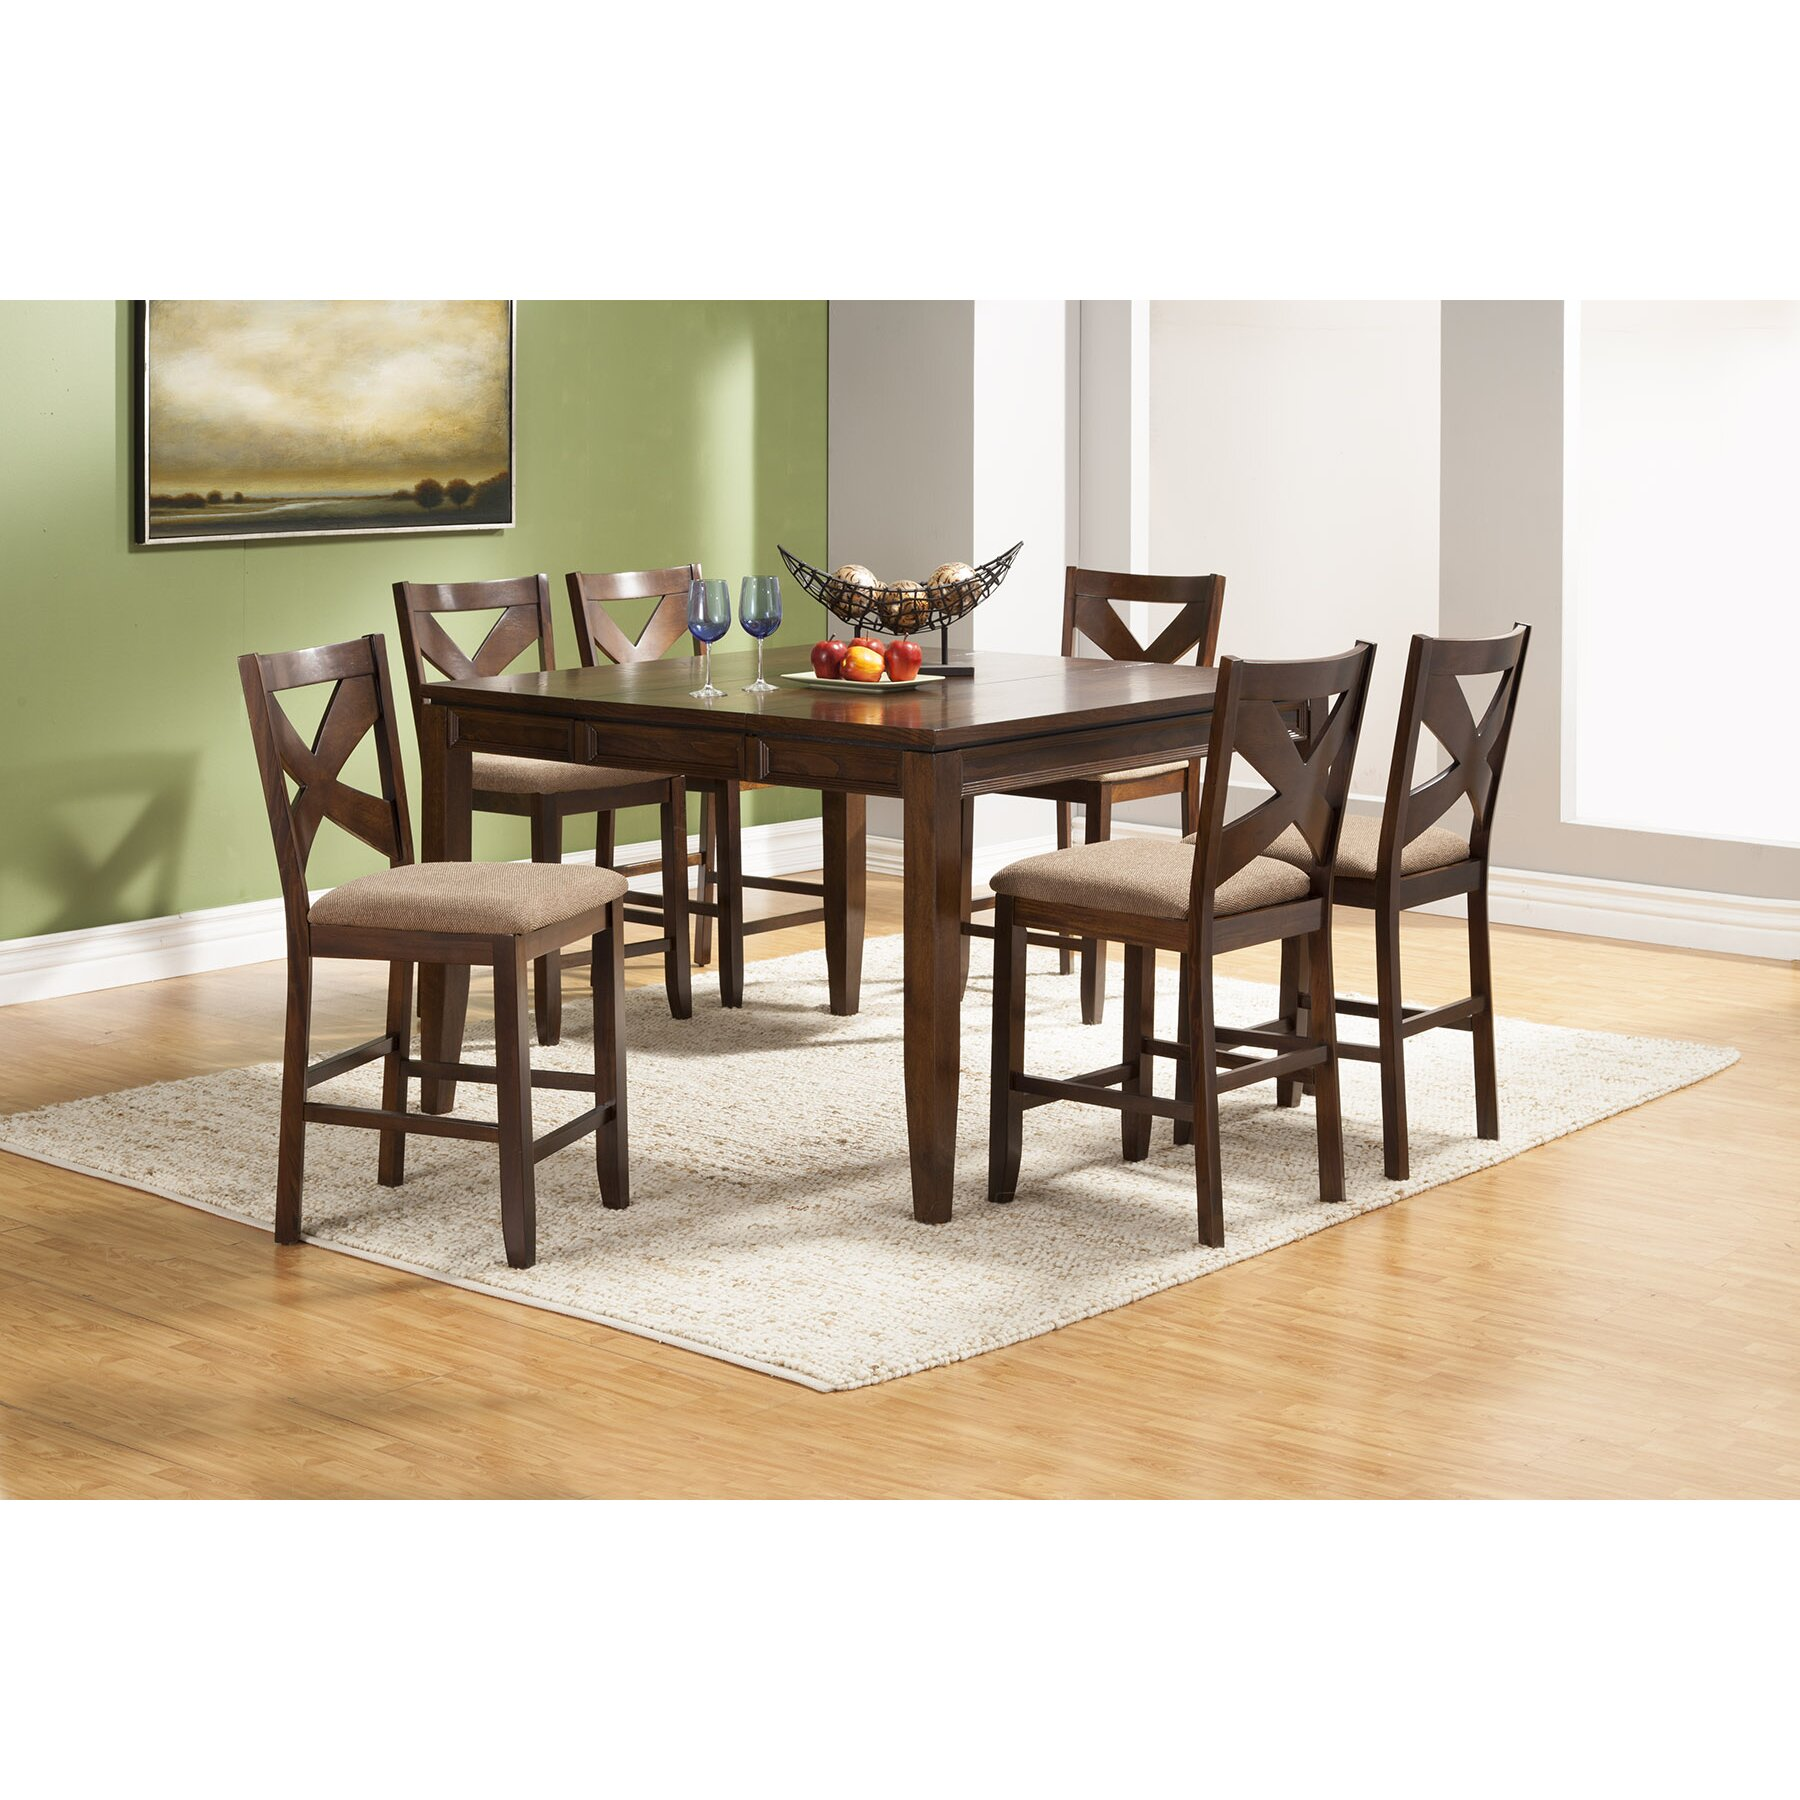 Alpine furniture albany 7 piece counter height dining set for Furniture 7 reviews